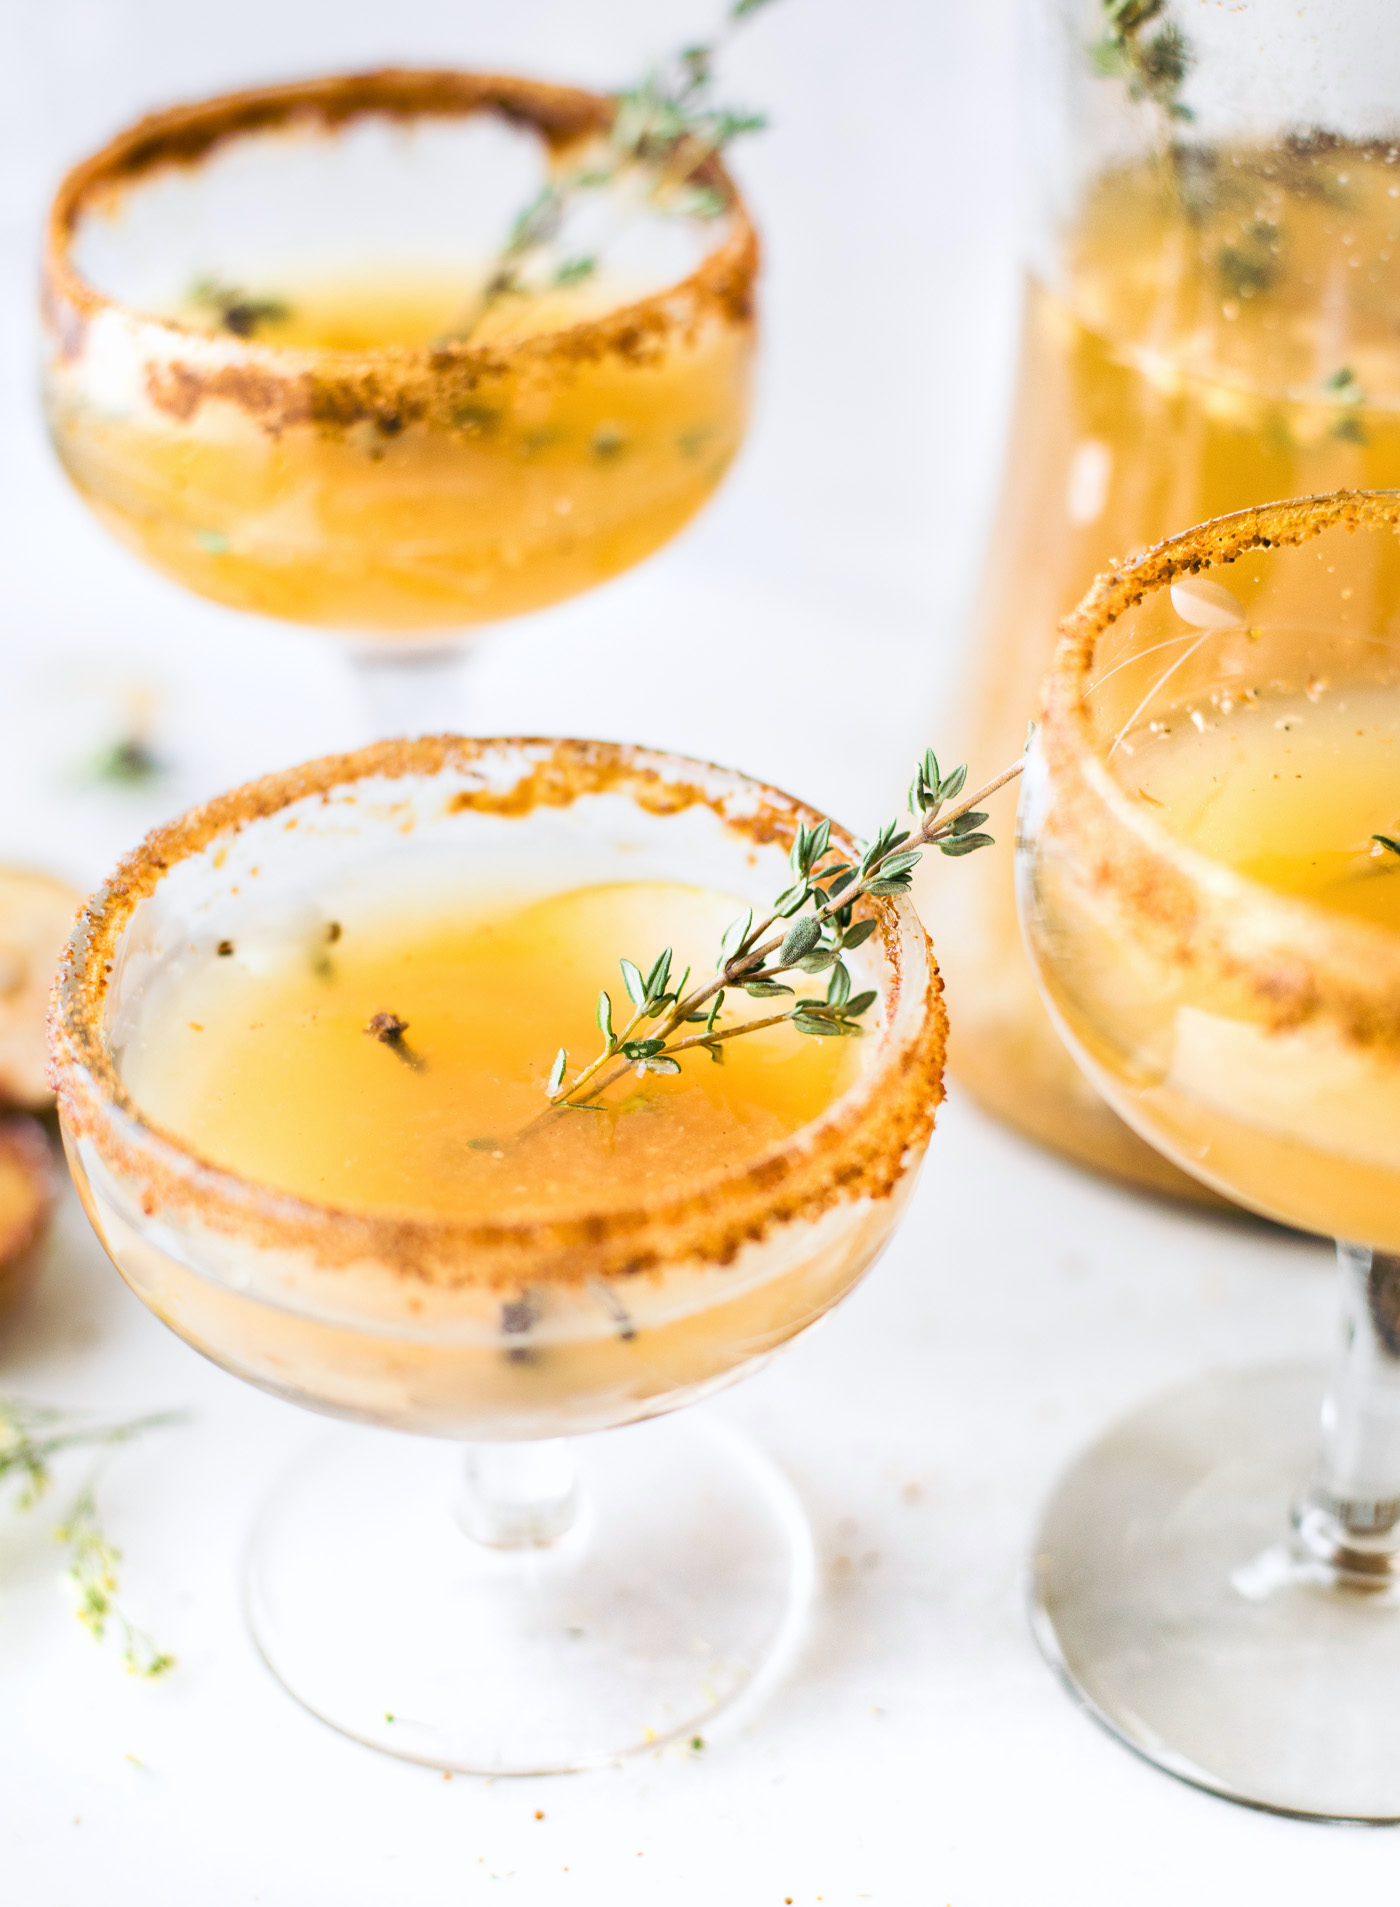 Recipe and image:     https://www.cottercrunch.com/honey-roasted-pear-sparkling-cocktails-mocktails/